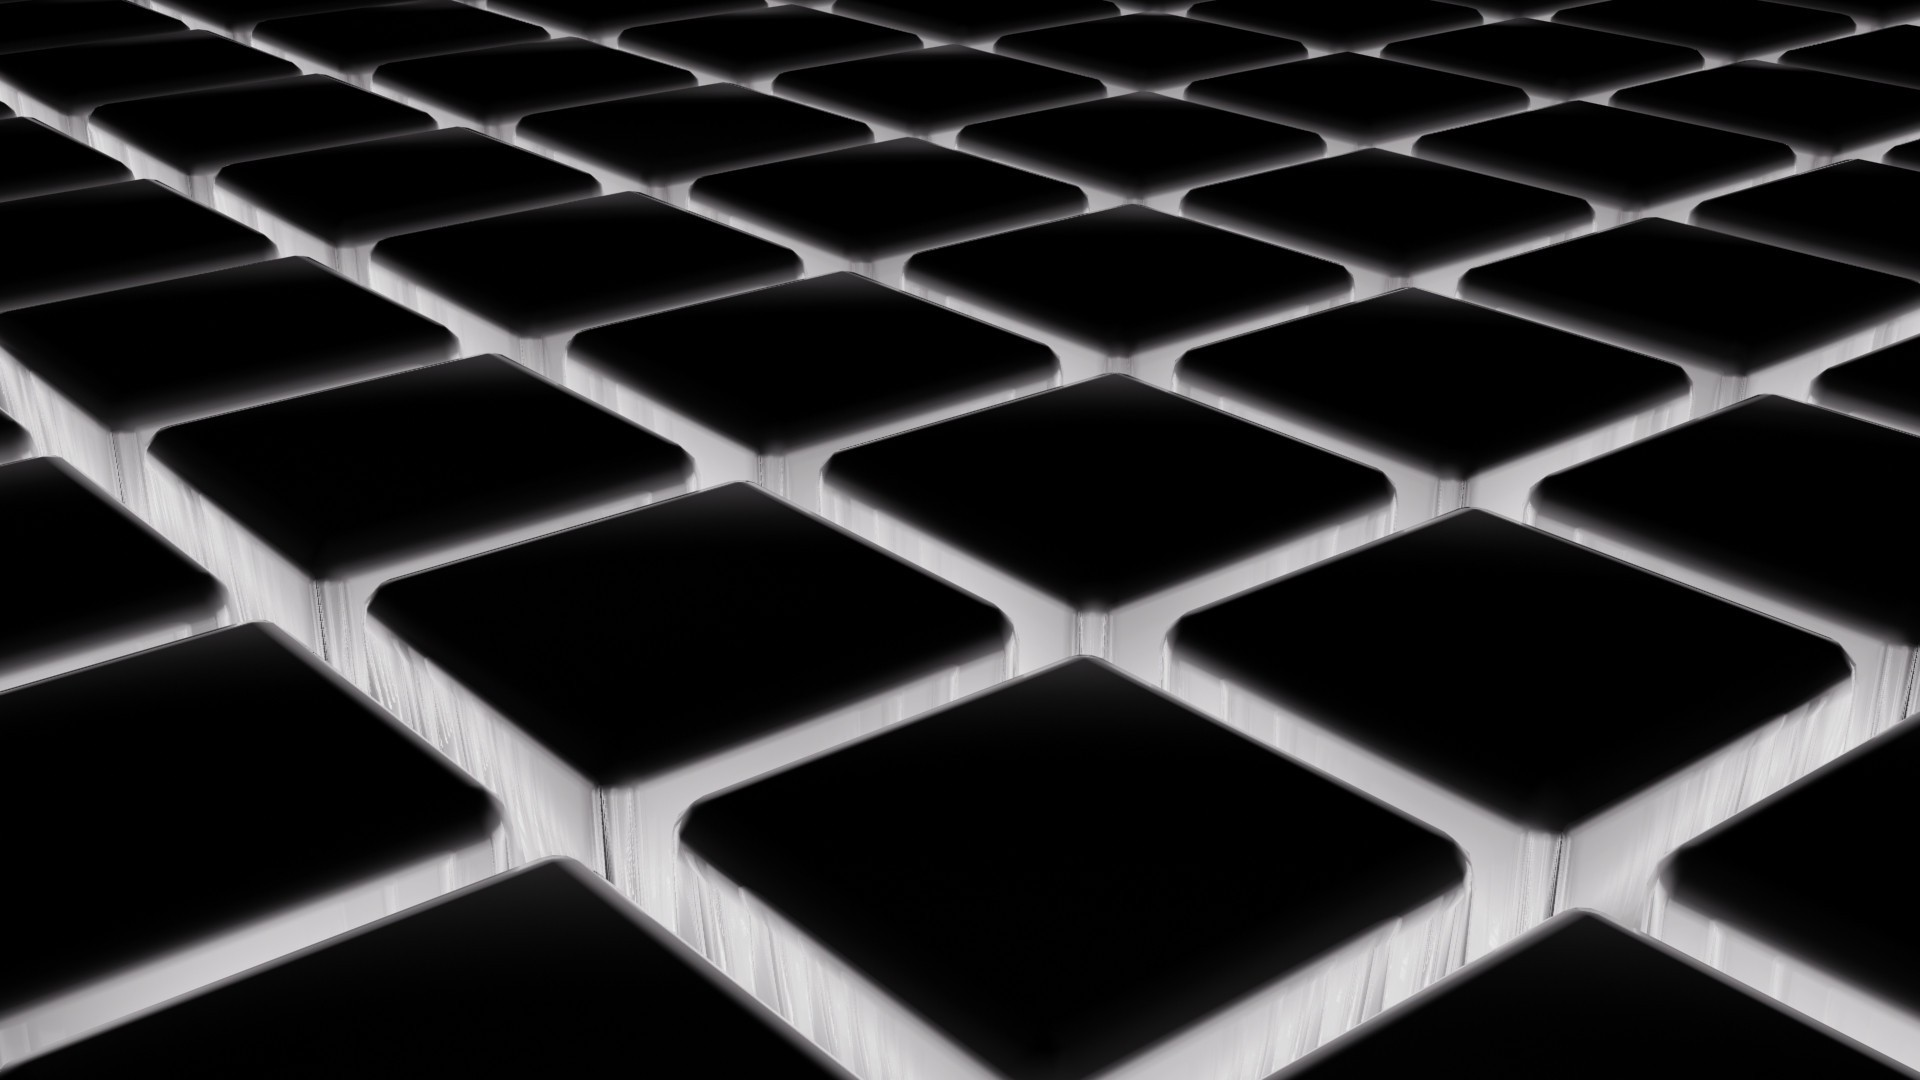 Abstract Seven Grid Wall Pattern Art iPhone 6 Wallpaper Download .